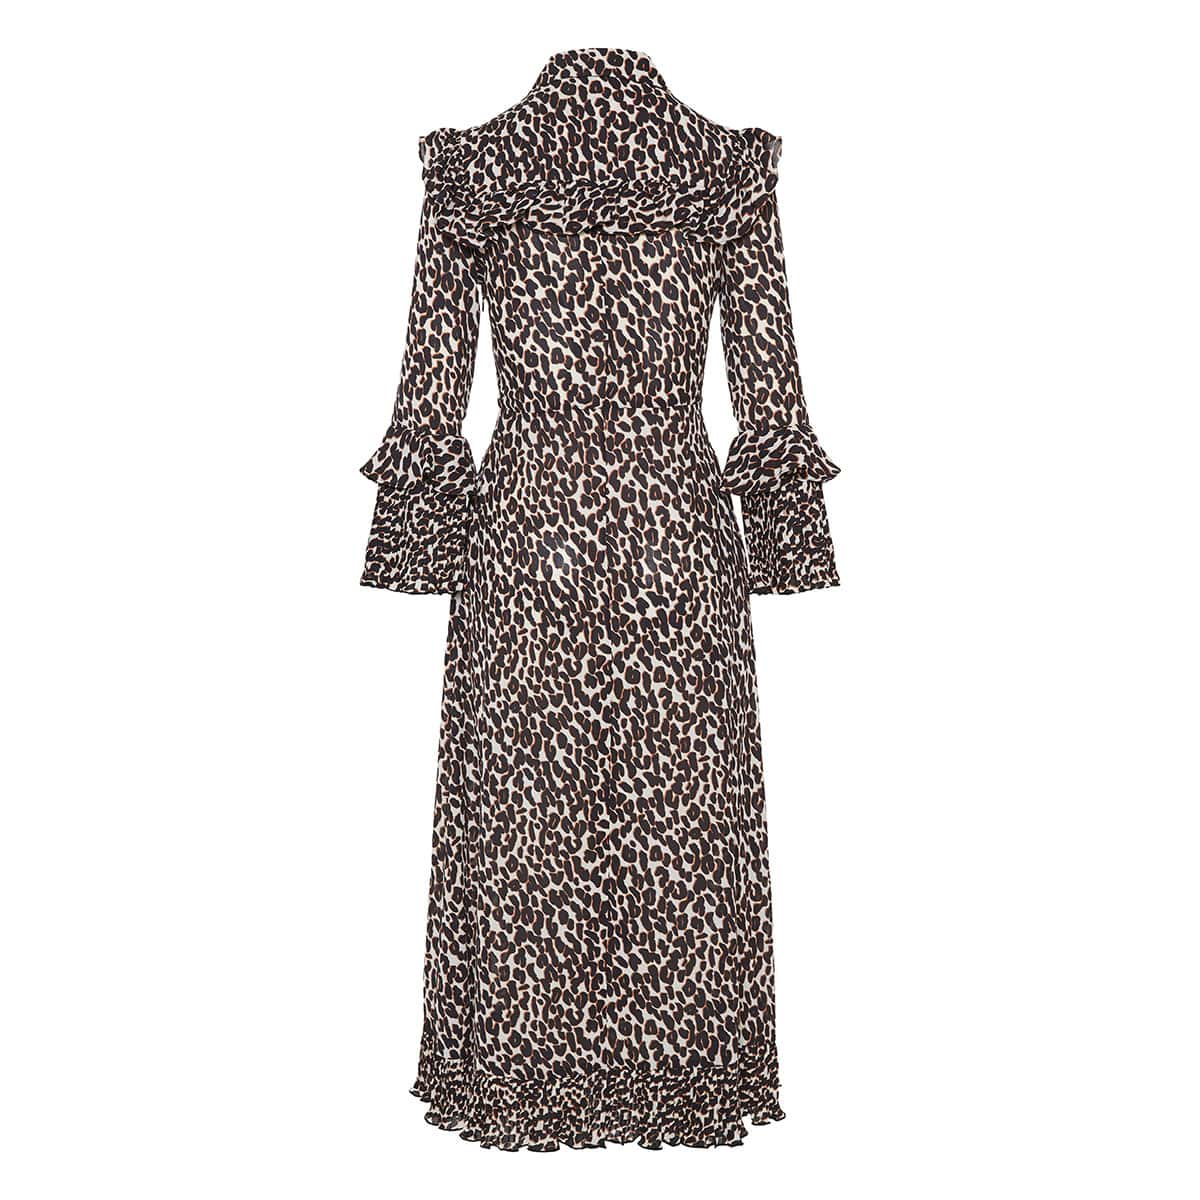 Leopard ruffle-trimmed midi dress